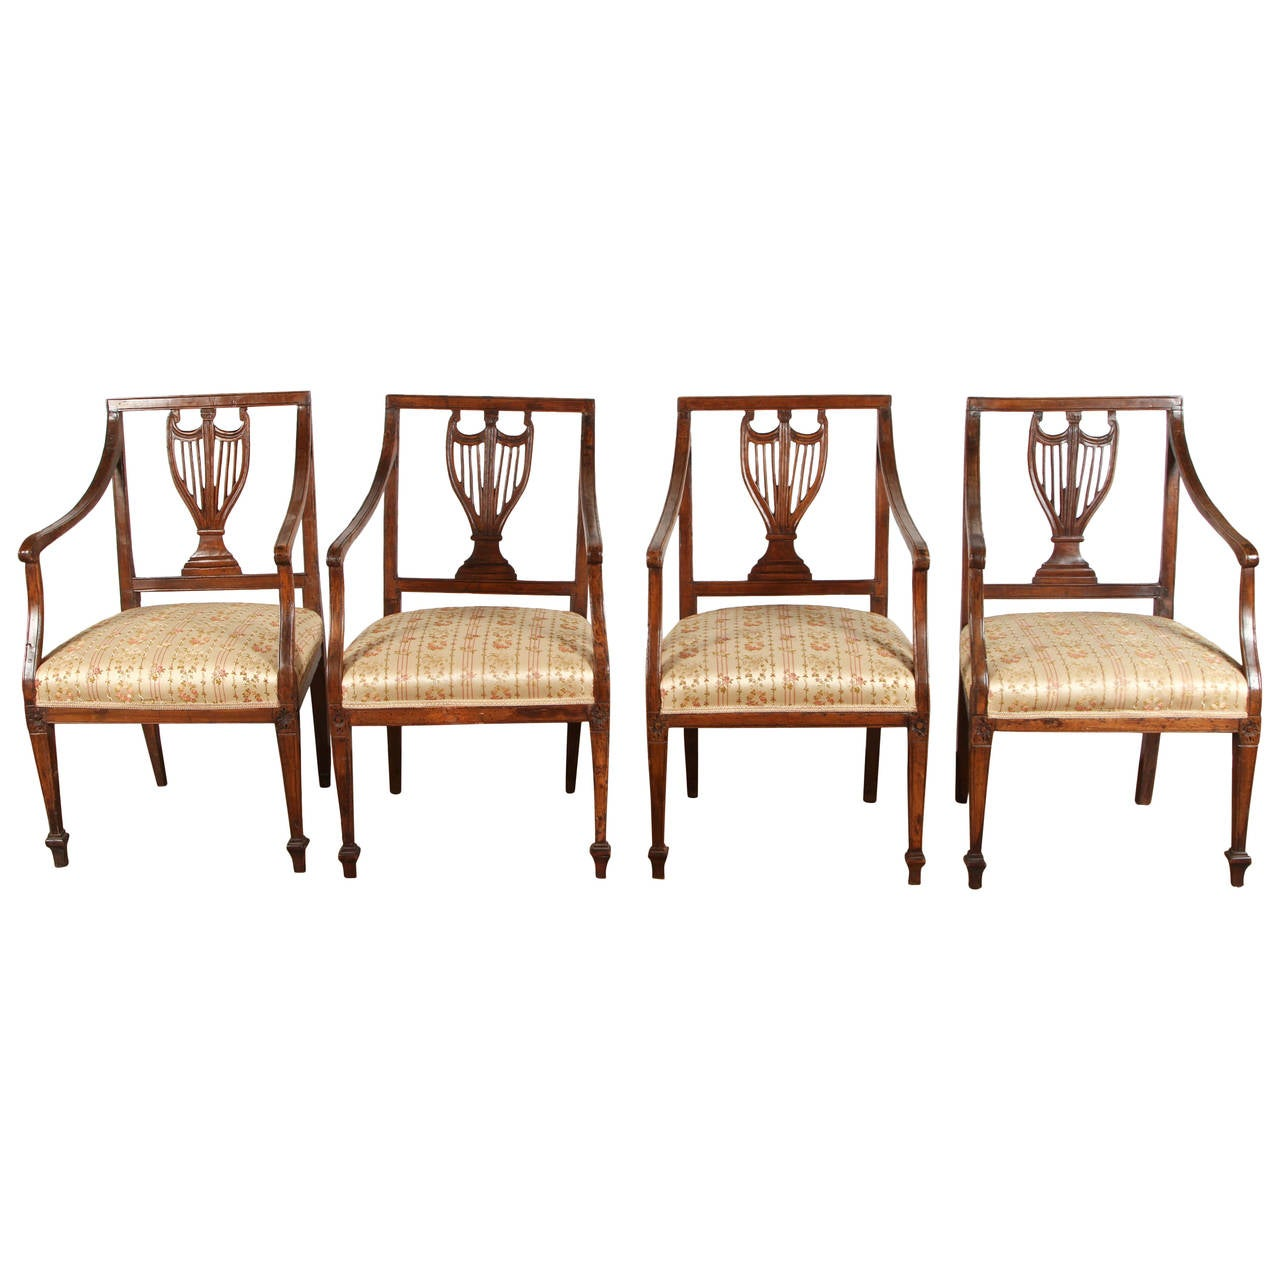 Set of Four 18th Century French Chairs